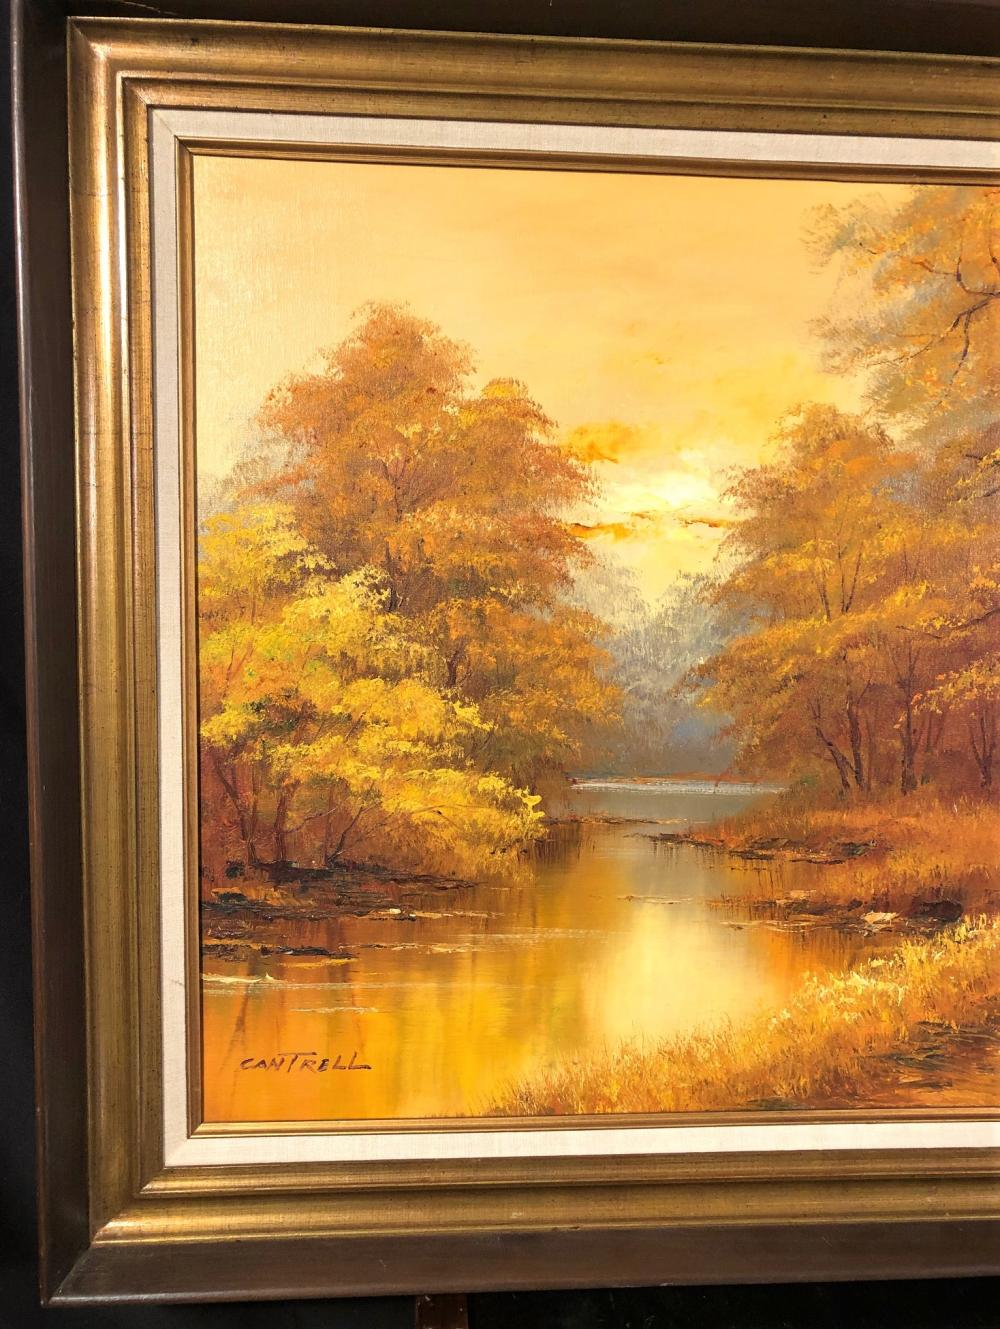 PHILIP CANTRELL (1922-Now) – ORIGINAL OIL ON CANVAS LANDSCAPE FRAMED PAINTING- 31in x 42in